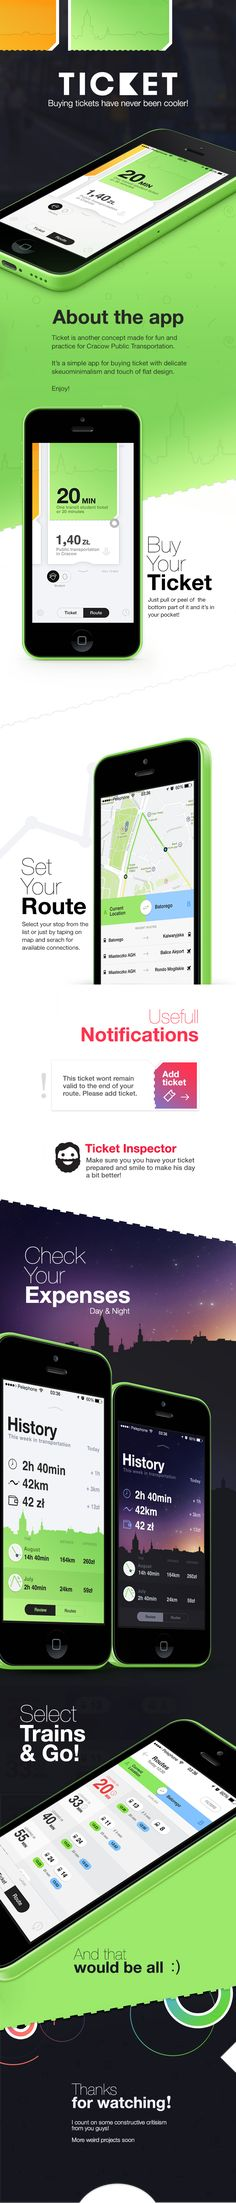 Ticket App https://www.behance.net/gallery/19678177/Ticket - love the day and night screens